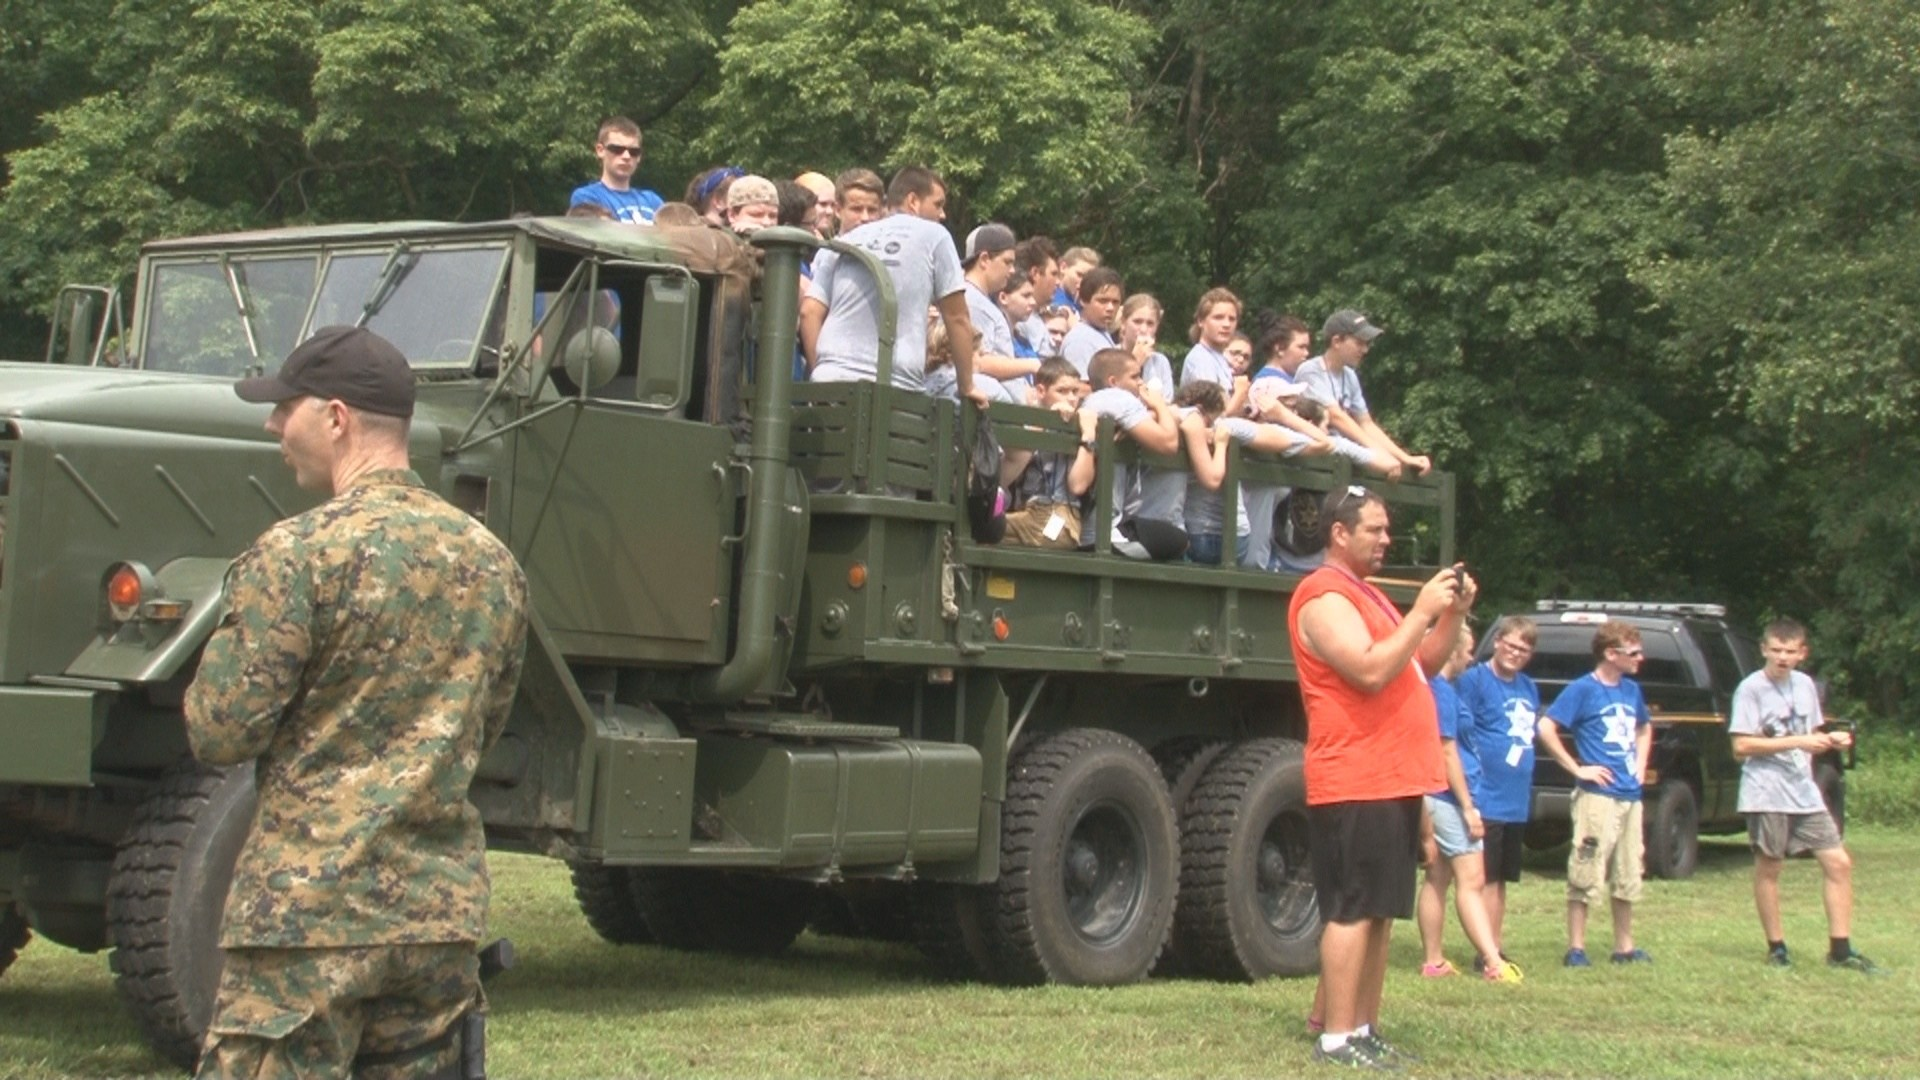 Sheriff leadership camp in Cabell County